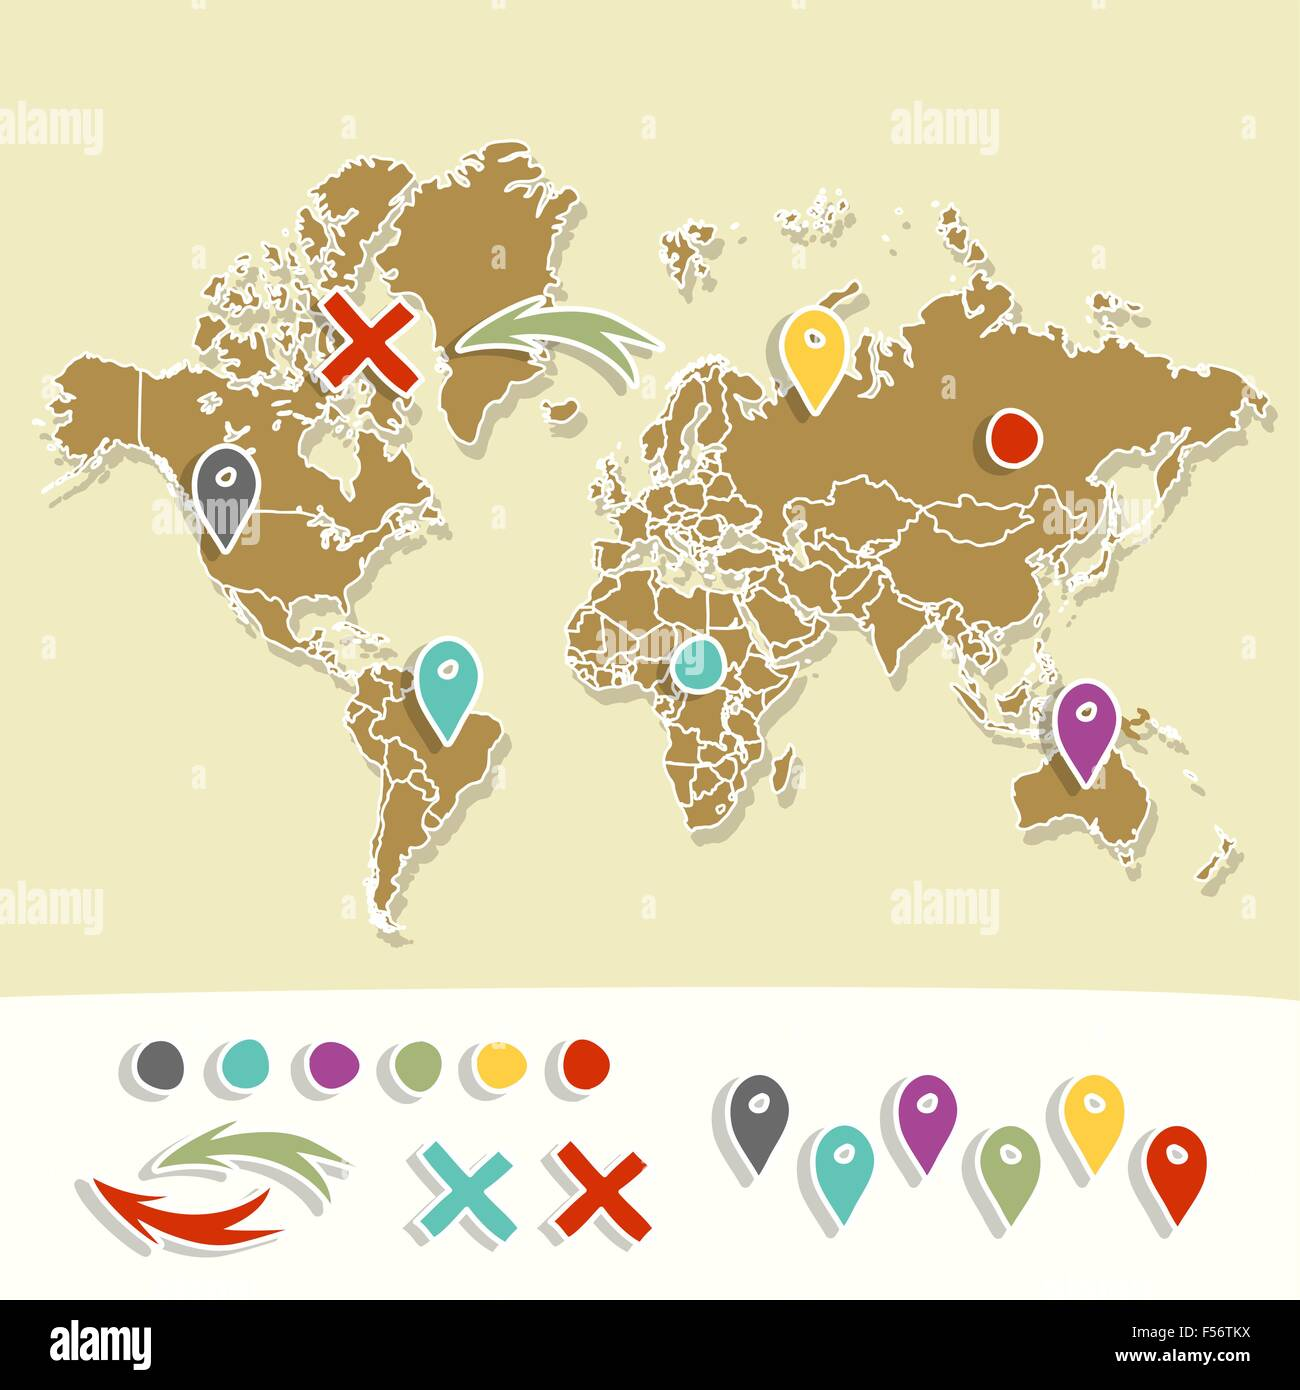 Hand drawn world map with pins and arrows vector design cartoon hand drawn world map with pins and arrows vector design cartoon style atlas illustration travel poster template gumiabroncs Image collections